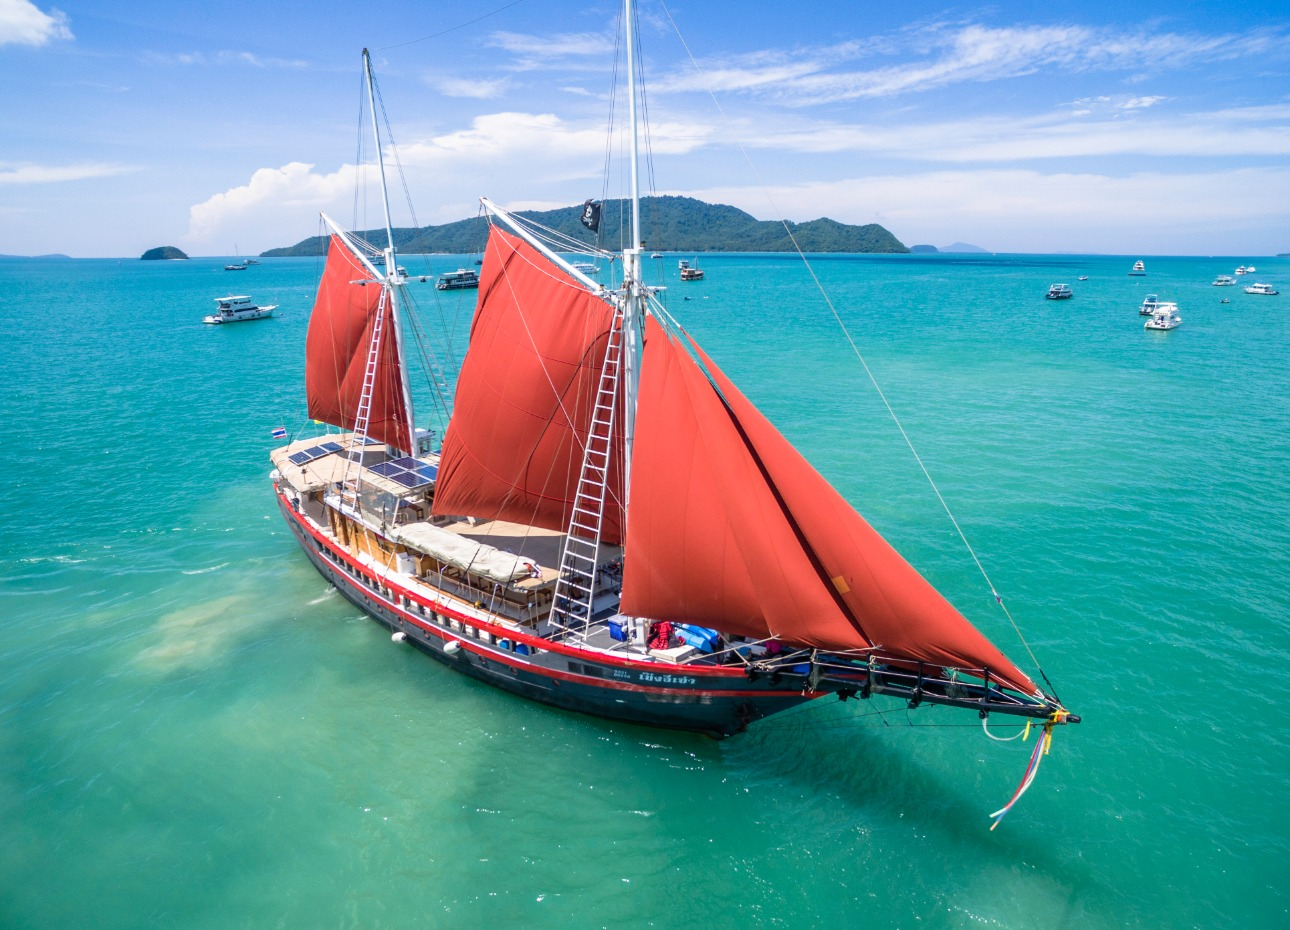 S/Y The Phinisi diving boat